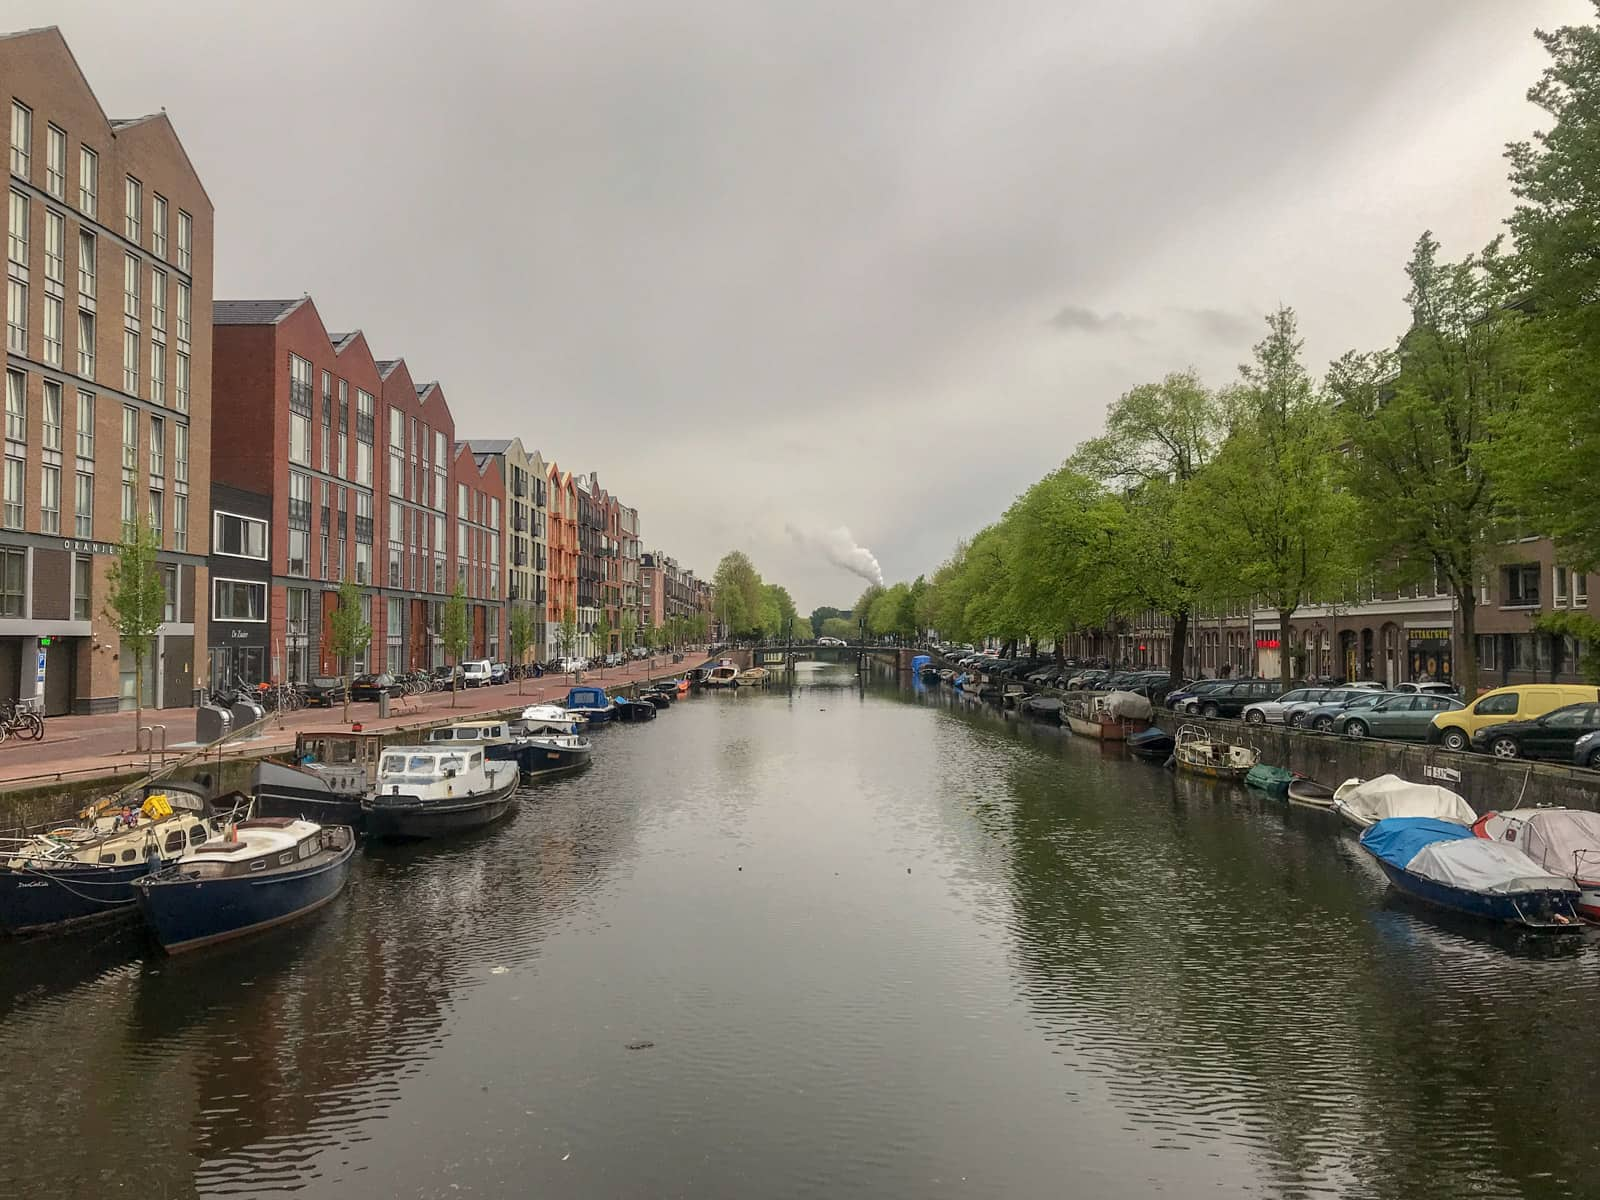 A canal in Amsterdam, seen from a bridge. The canal extends further away into the distance. Many canal boats are stationary on the sides of the canal.